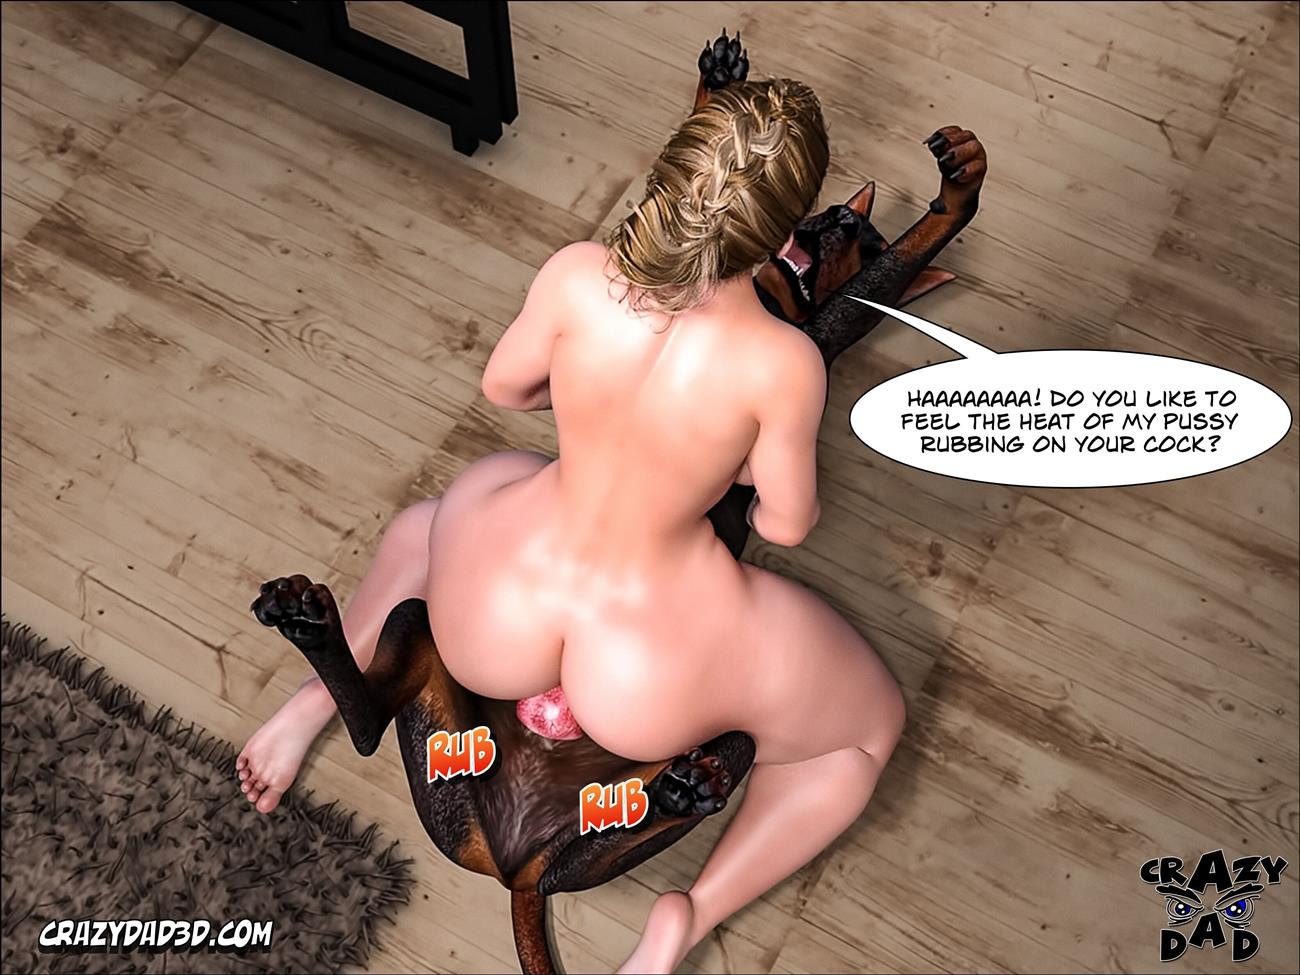 Father-in-Law at Home 12 [Crazy Dad 3D] - Foto 56